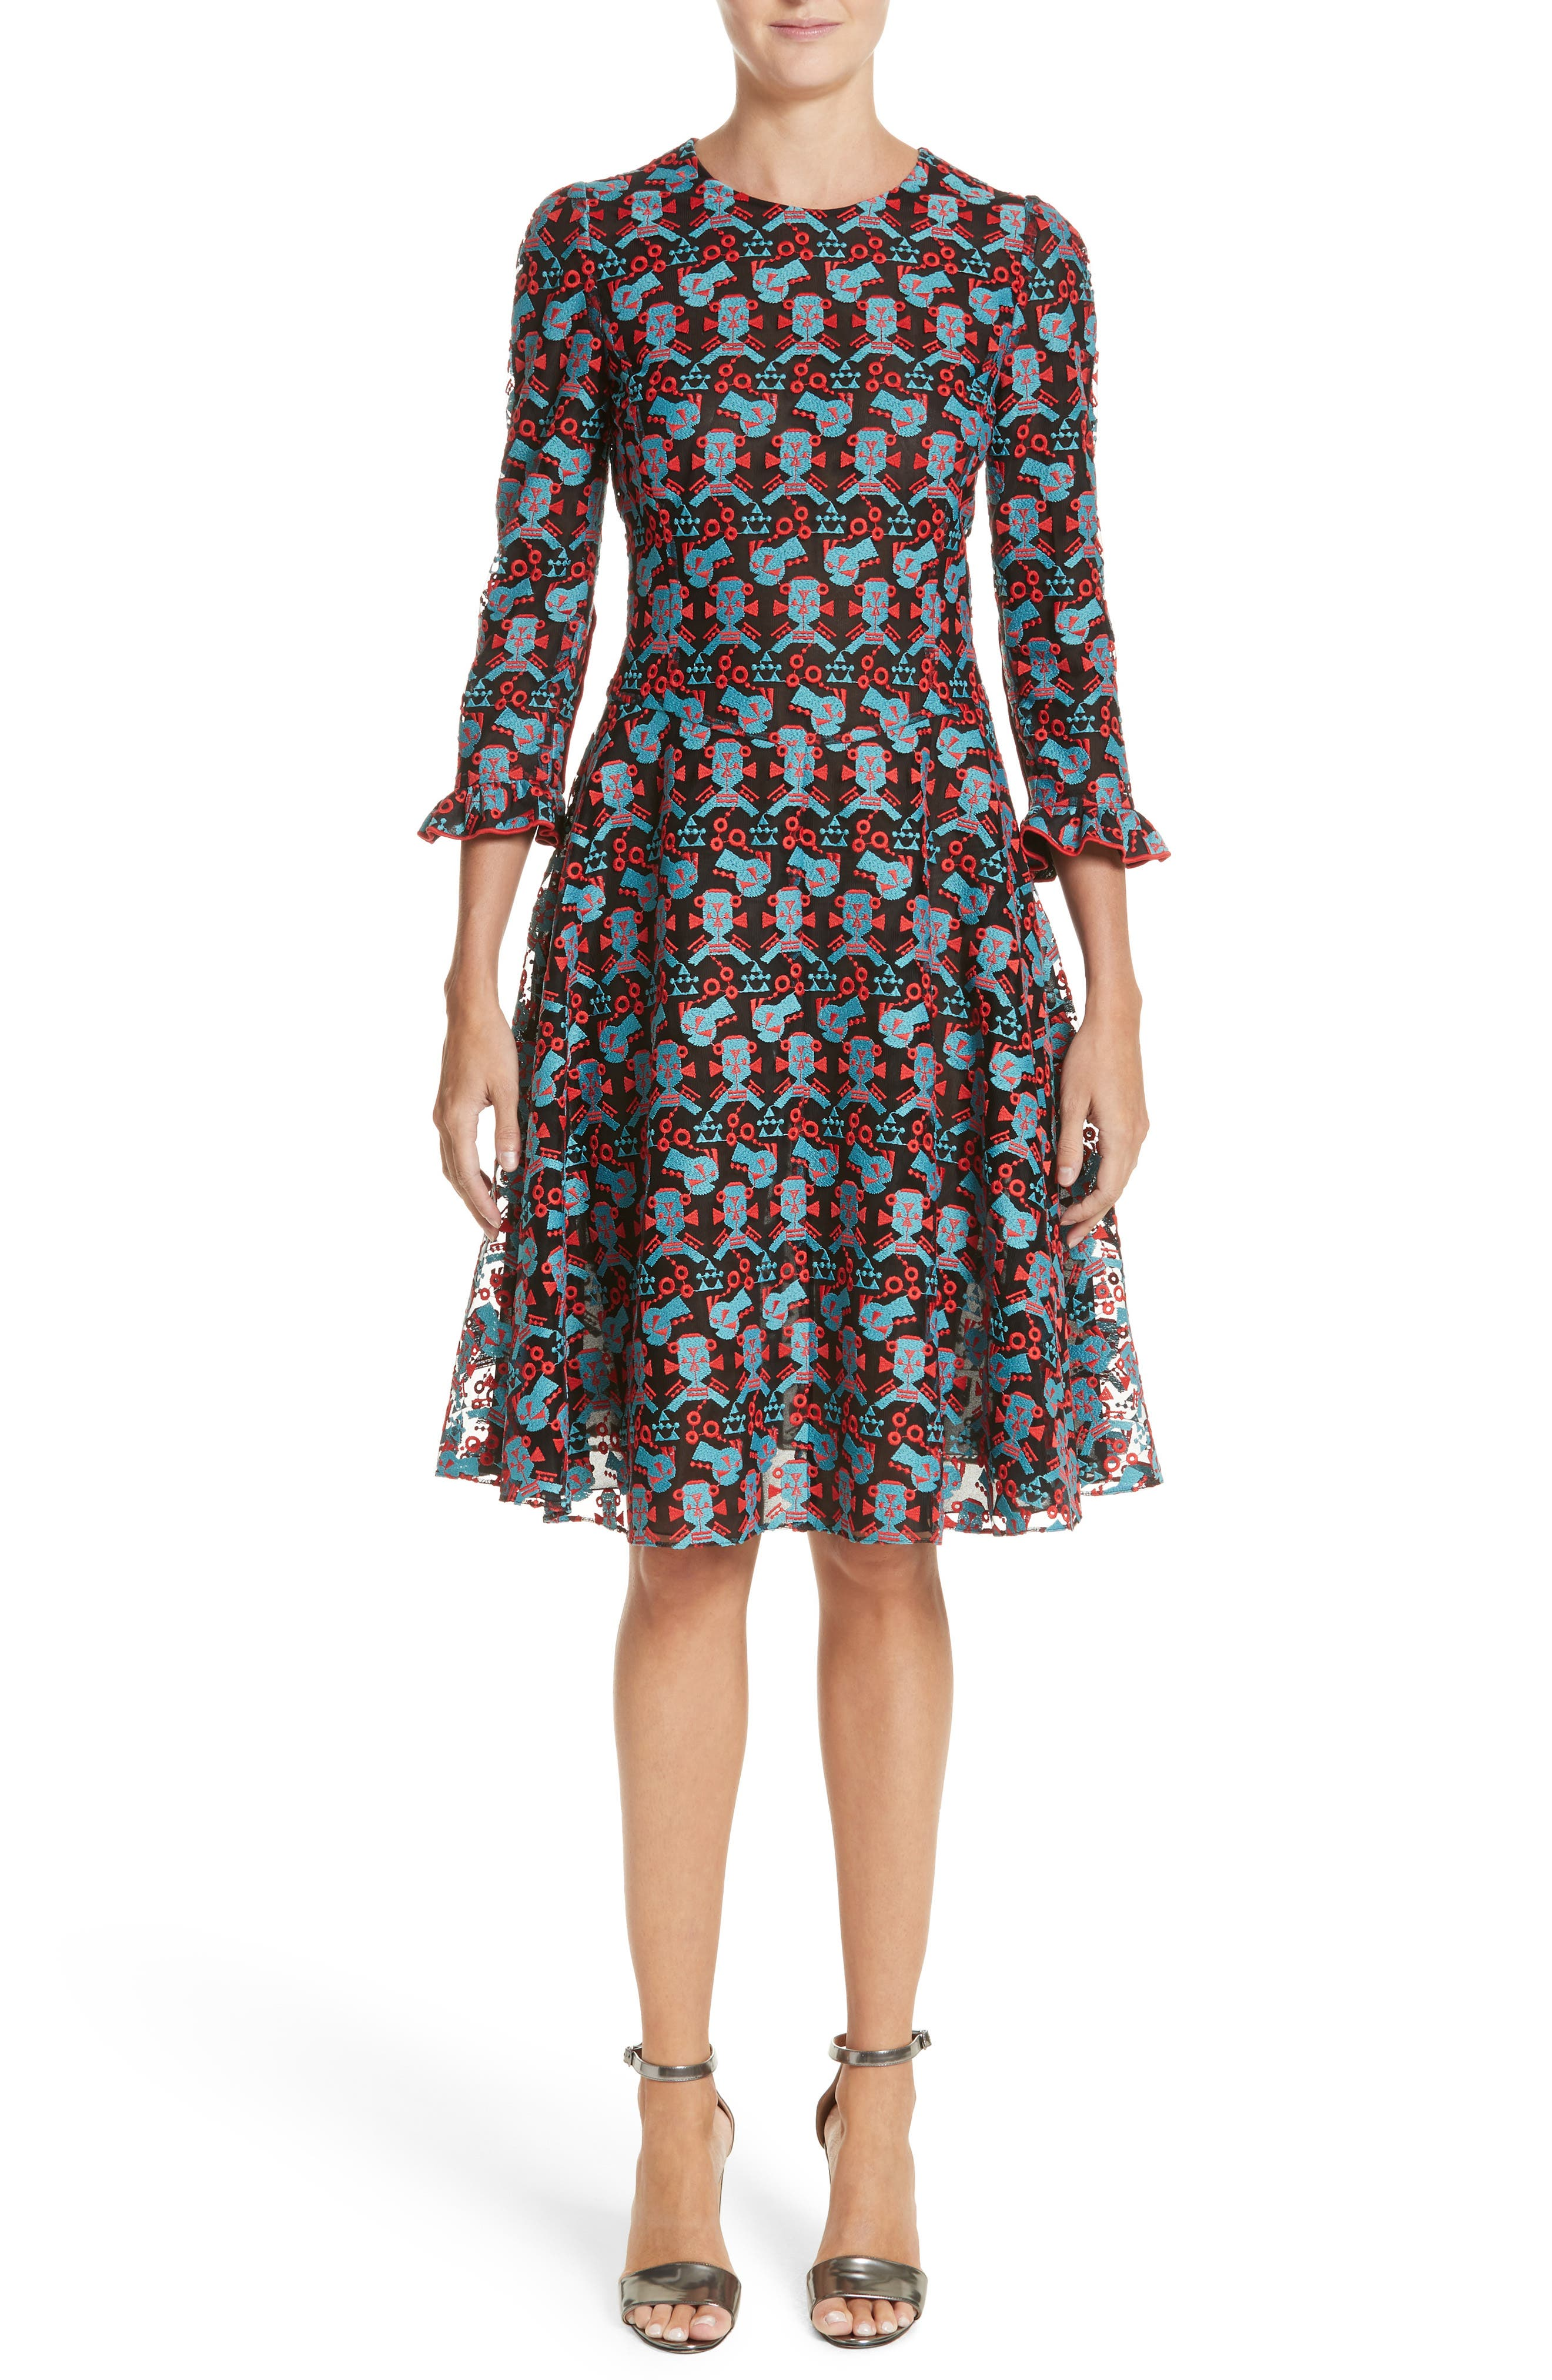 Alternate Image 1 Selected - Emporio Armani Embroidered Fit & Flare Dress